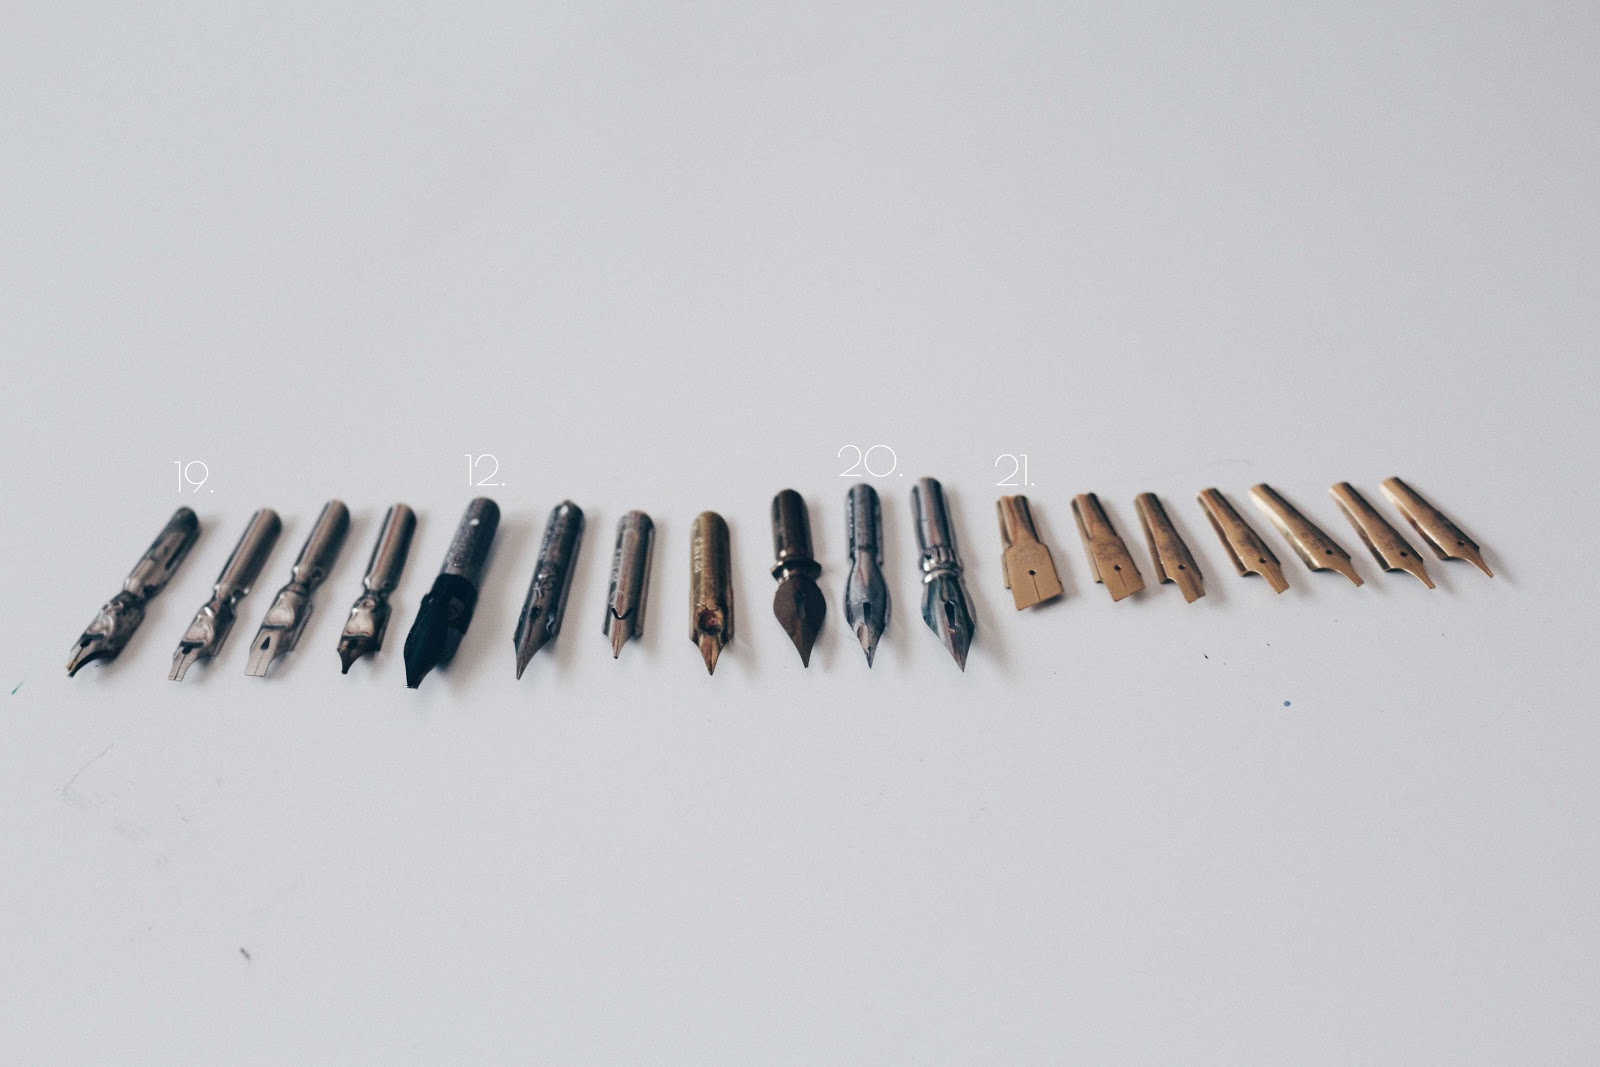 decorative calligraphy nibs